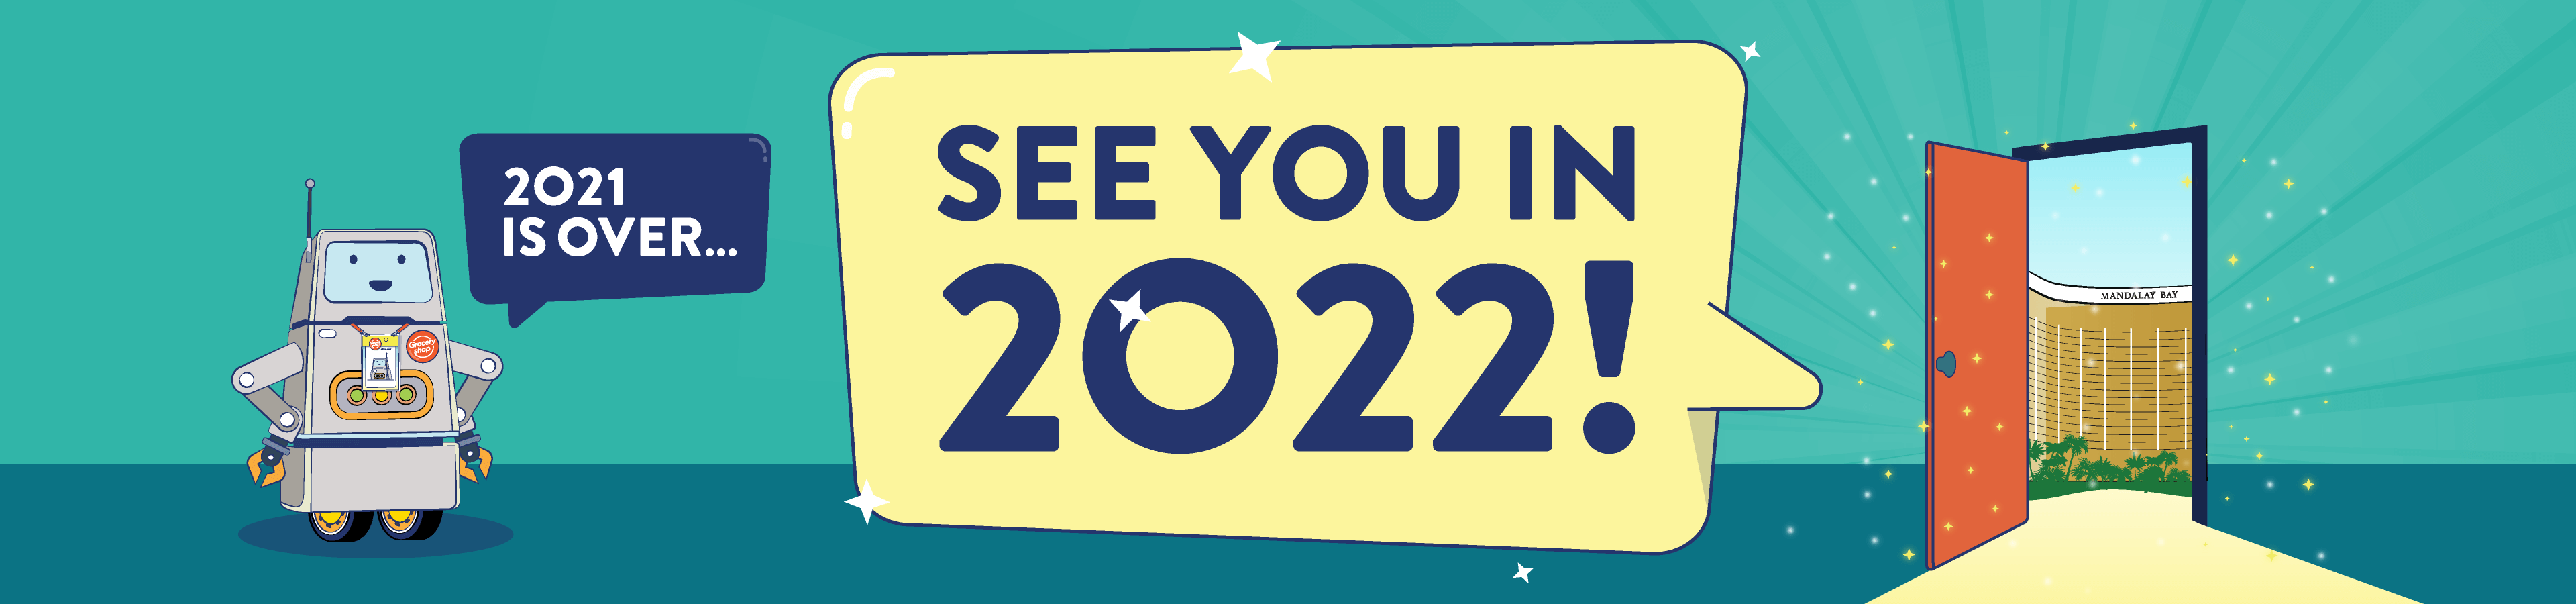 2021 is over... See you in 2022!